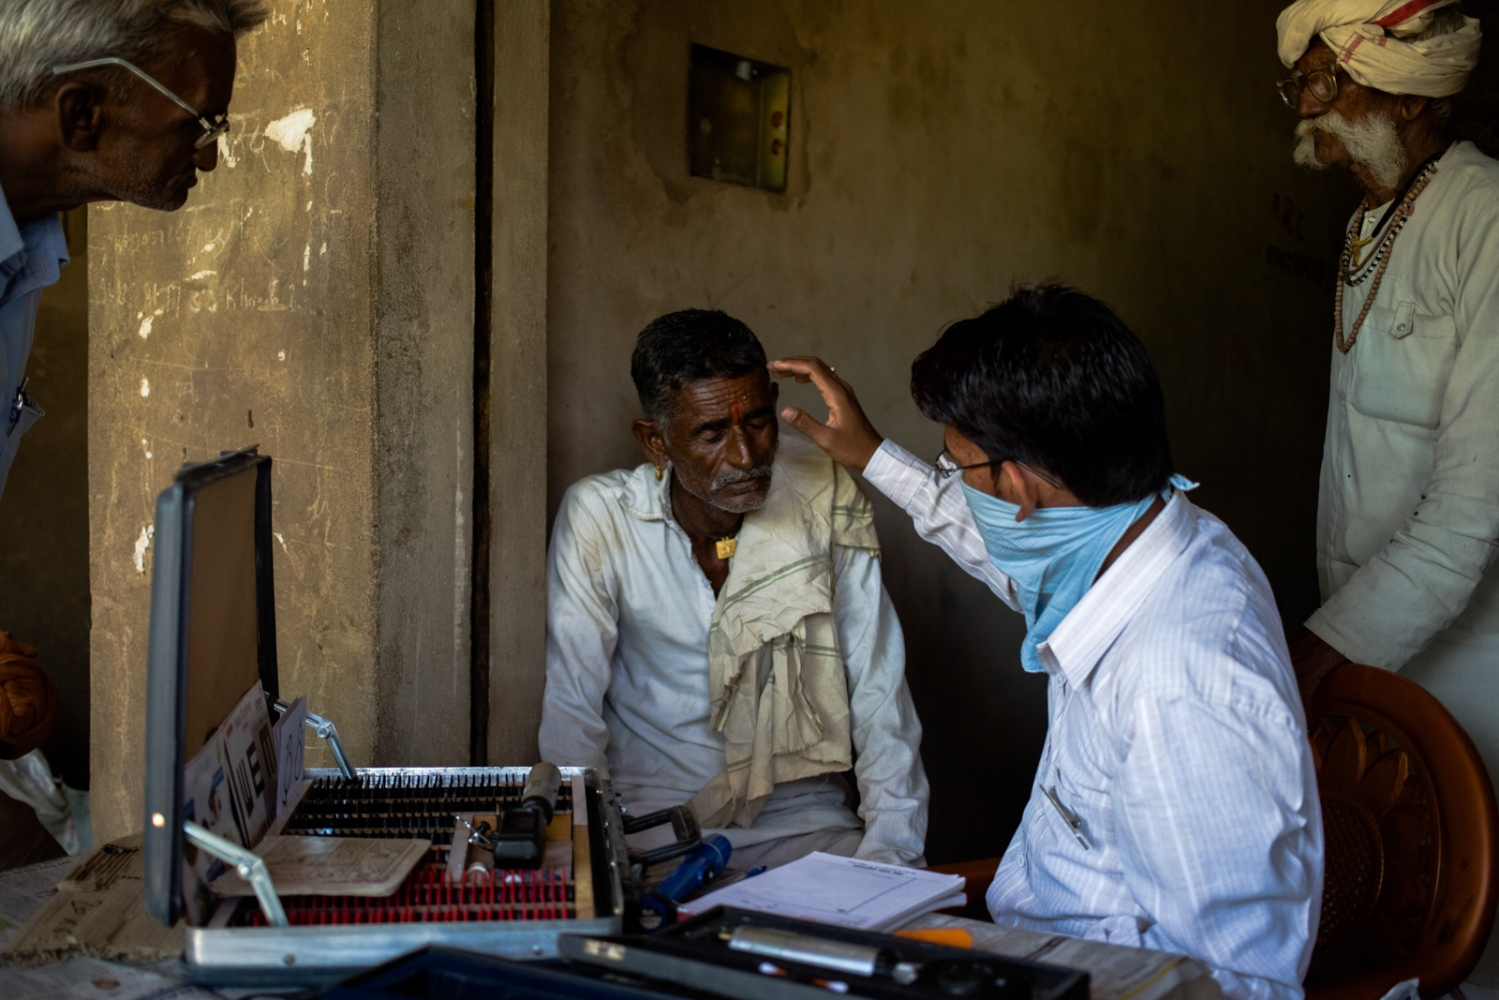 Art and Documentary Photography - Loading India-Shroff-Finals-8.jpg